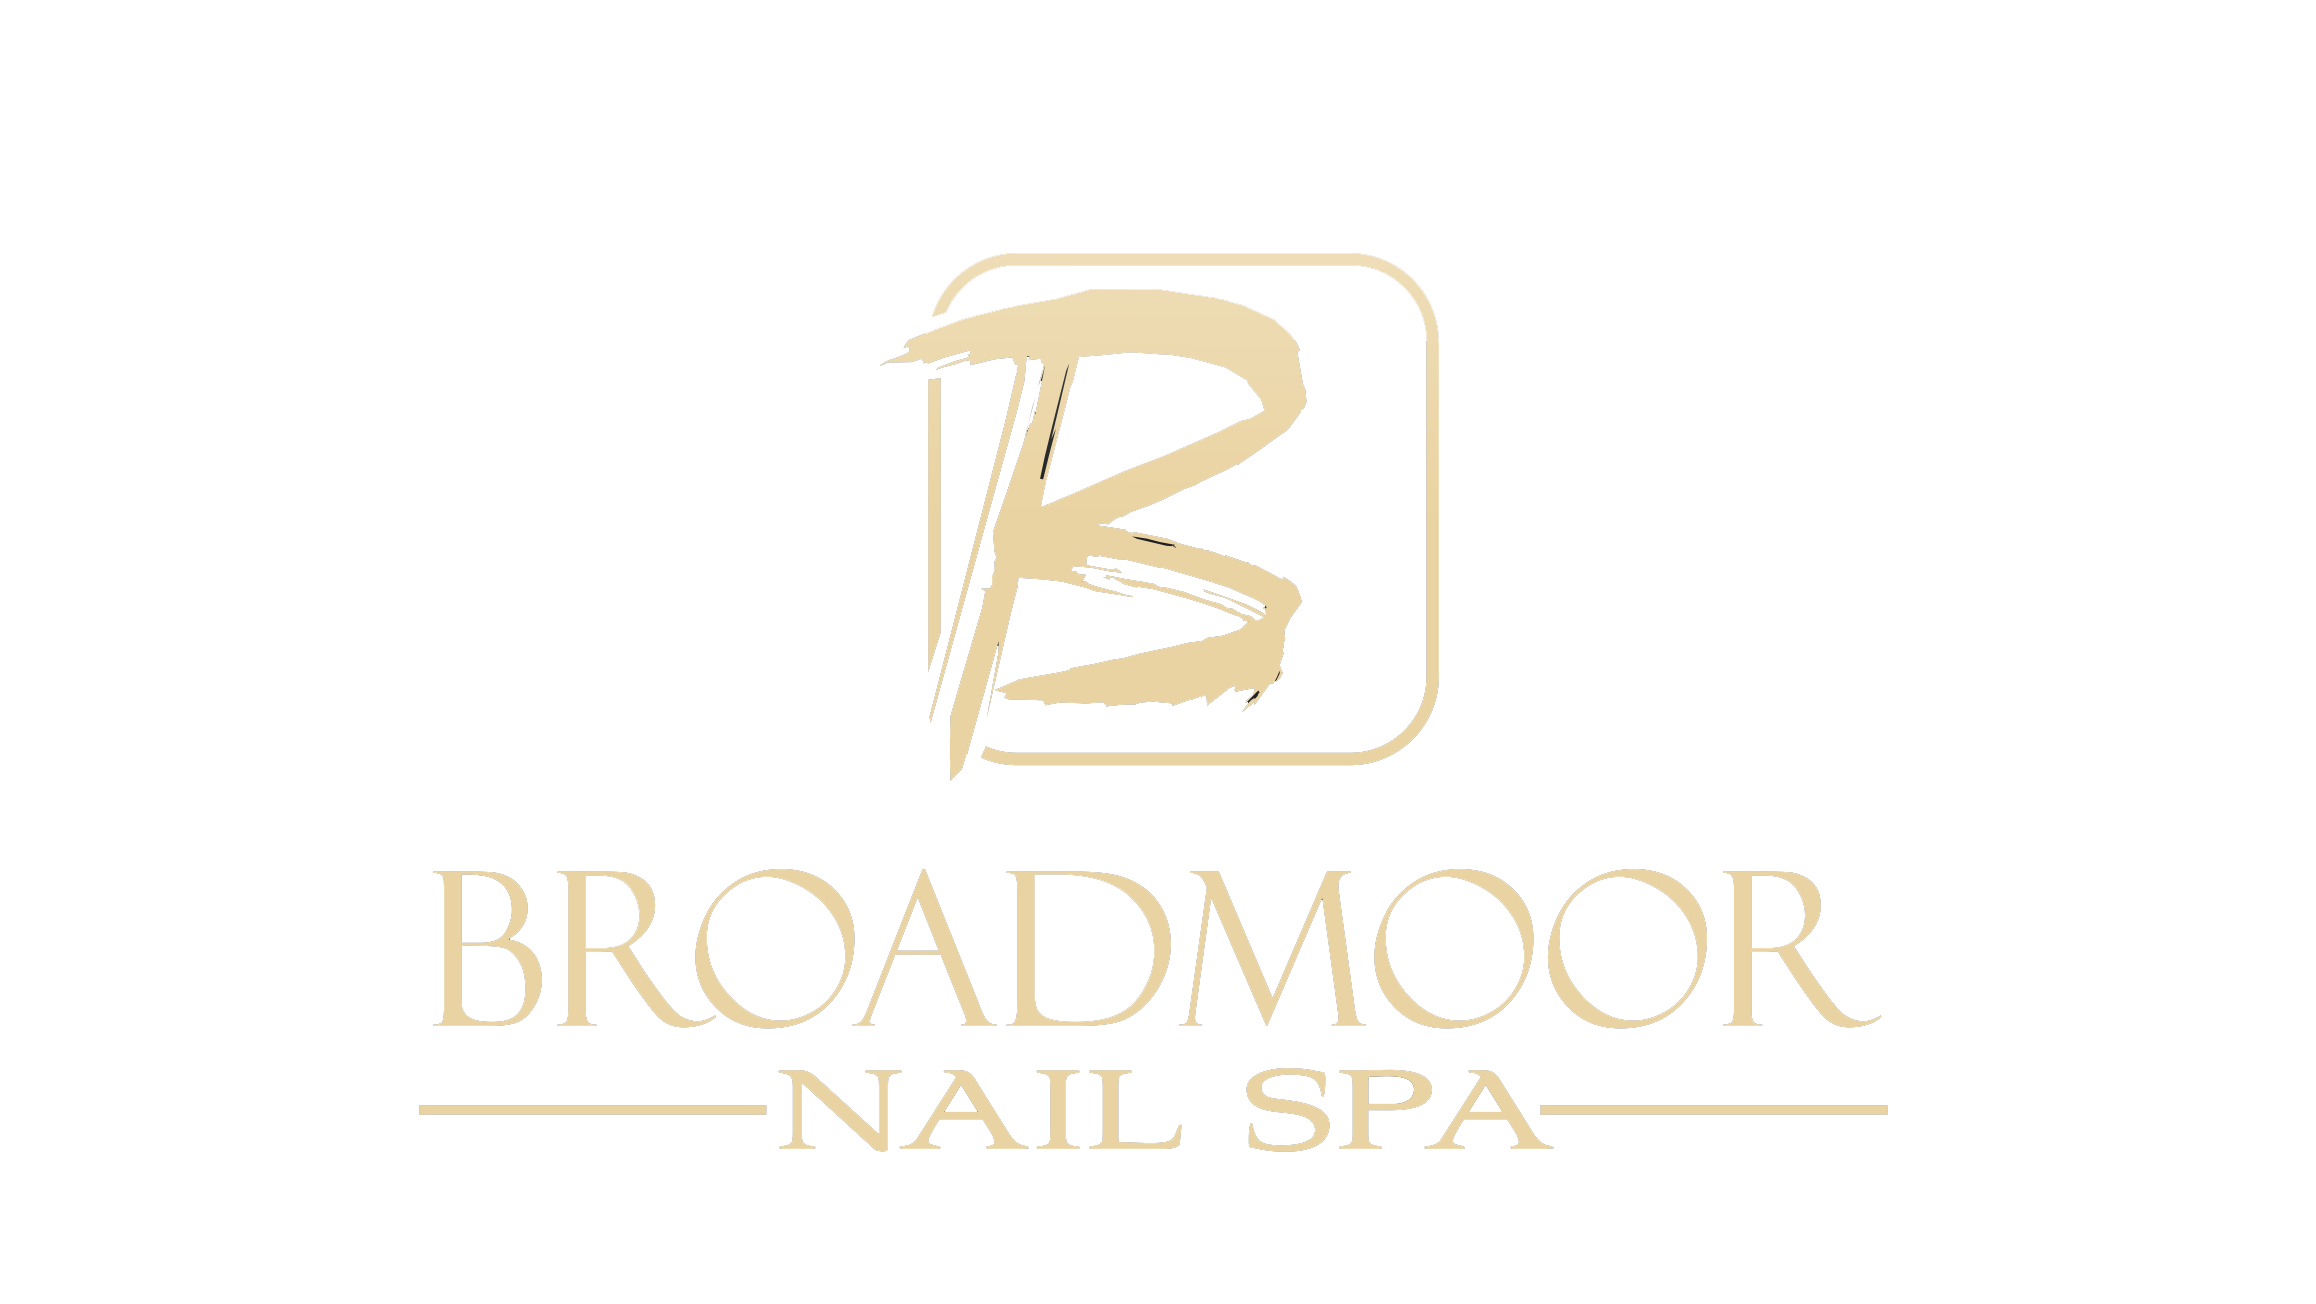 Broadmoor Nail & Spa